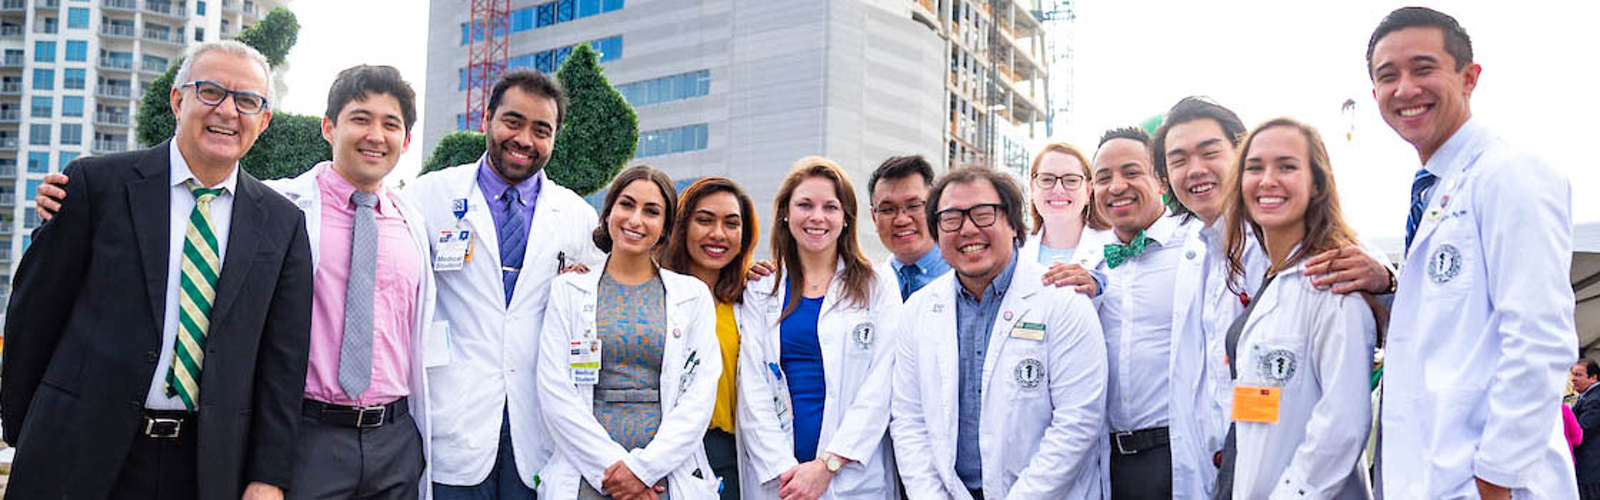 Dr. Panos Vasiloudes poses with medical students at the November topping off-ceremony for the new USF Health Morsani College of Medicine and Heart Institute.